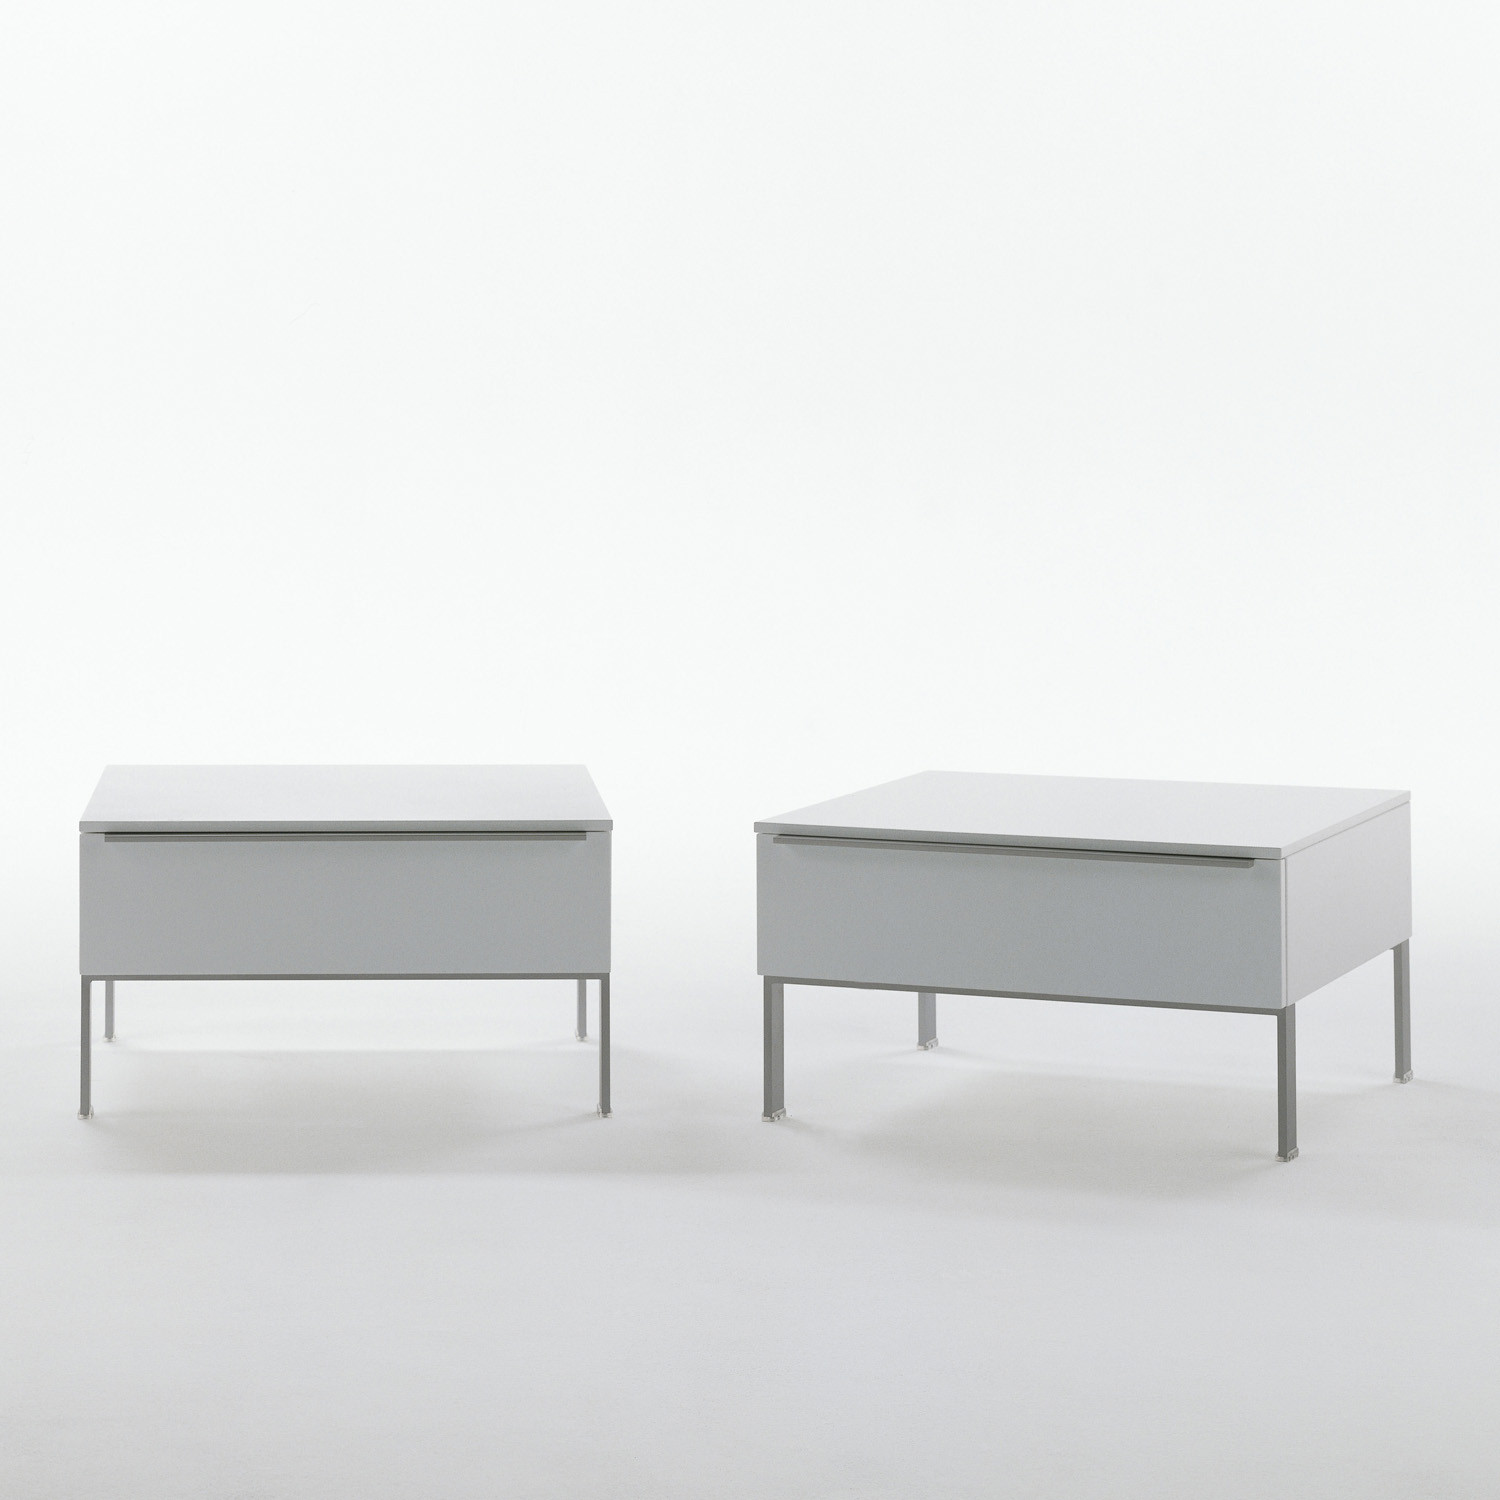 Brest Notte Cabinet by Cappellini